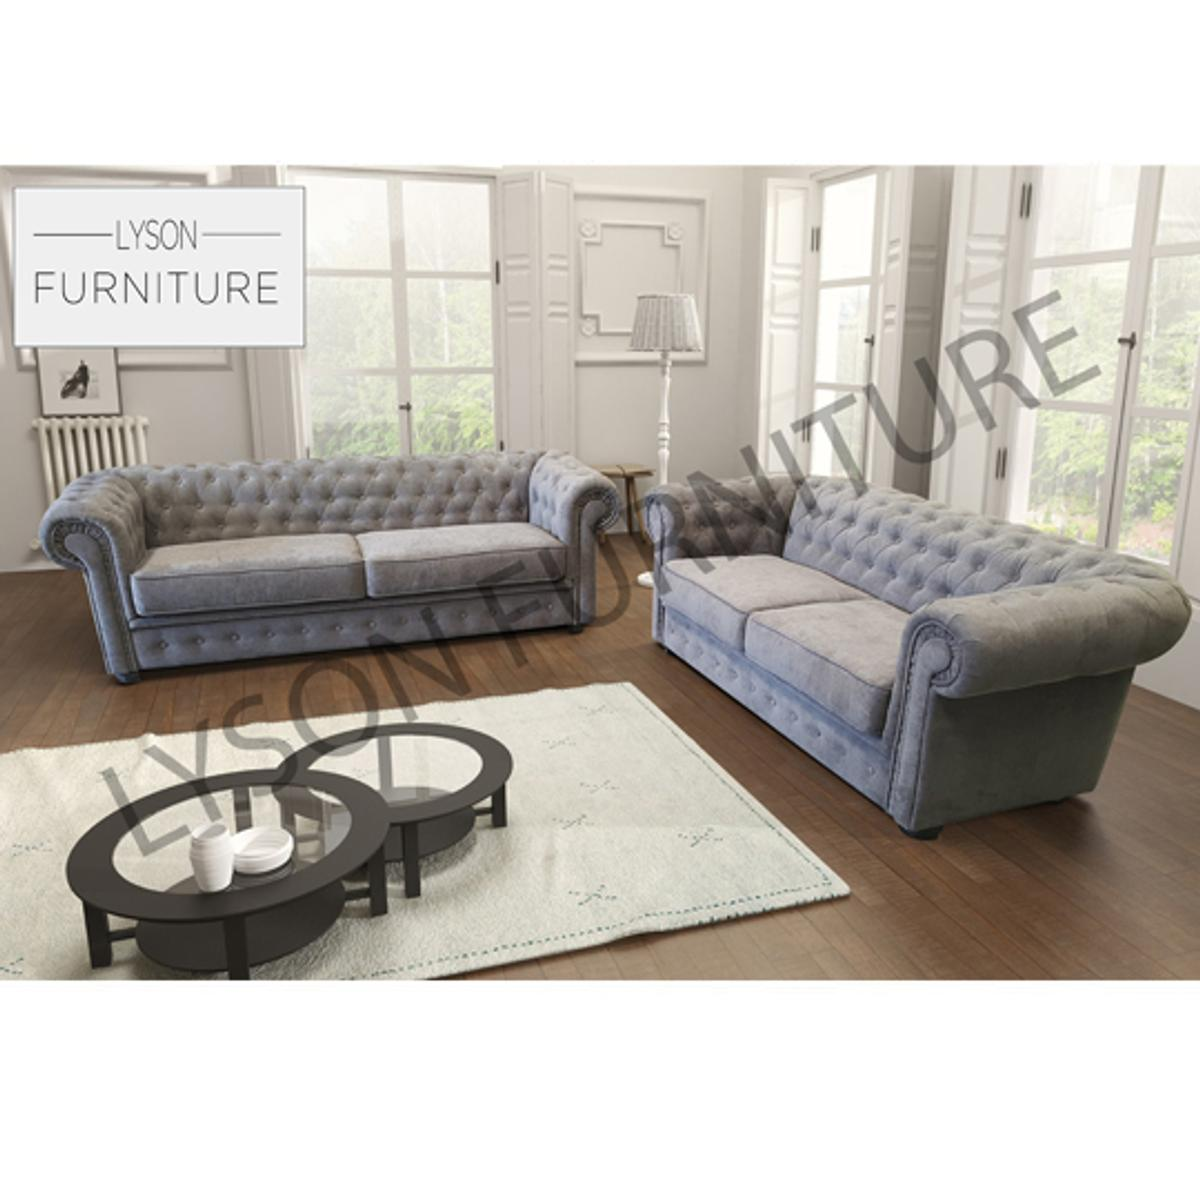 Brilliant Chesterfield 3 2 Sofa Set Fabric Dailytribune Chair Design For Home Dailytribuneorg